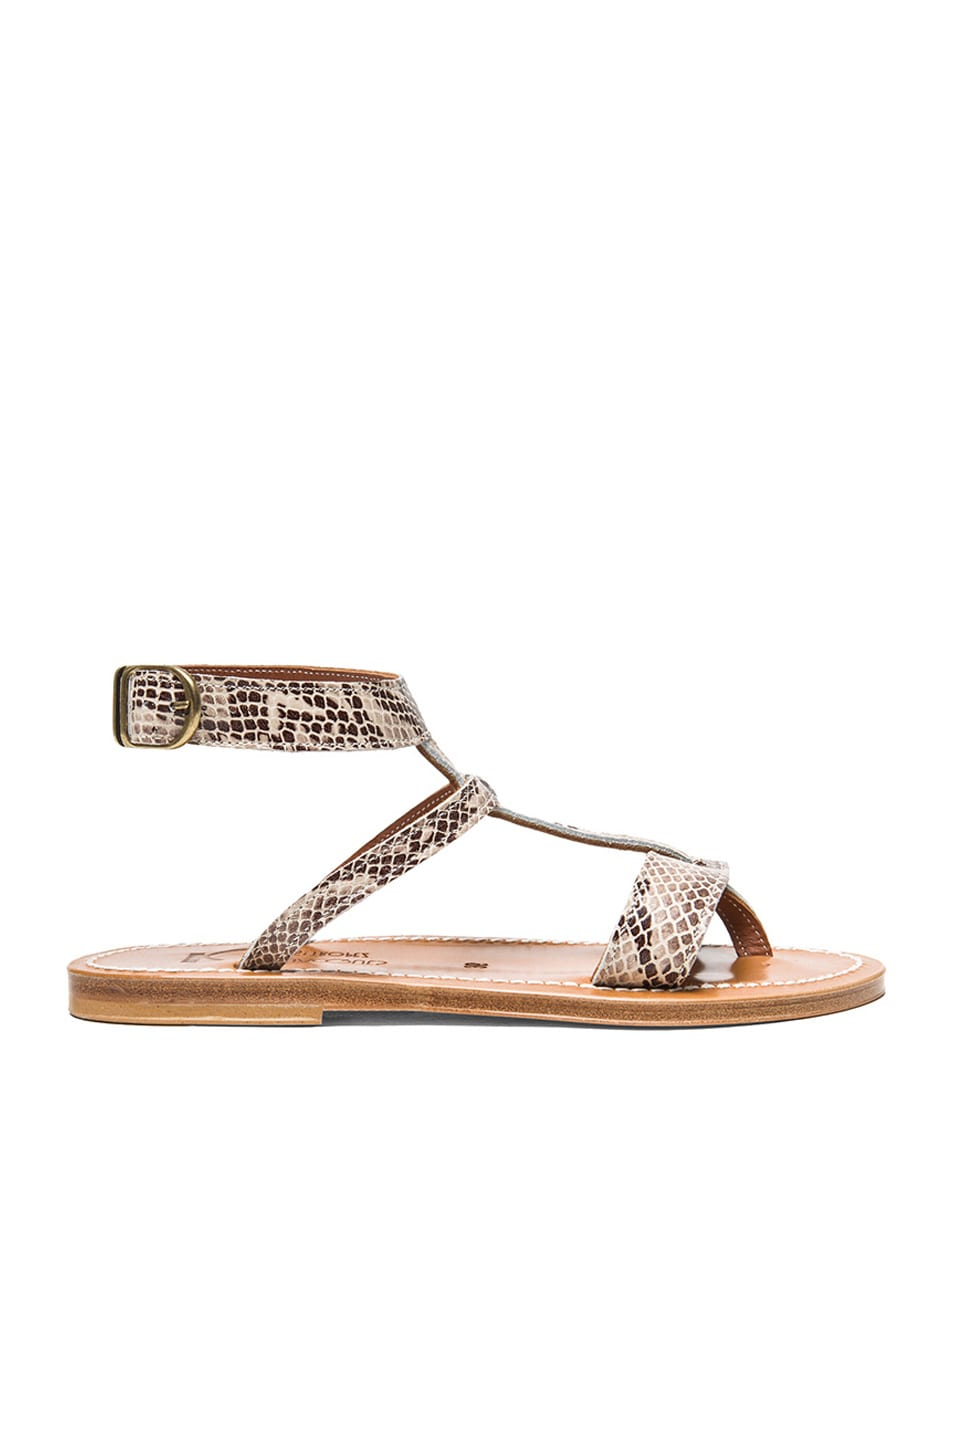 Image 1 of K Jacques Corvette Snakeskin Embossed Leather Sandals in Duna